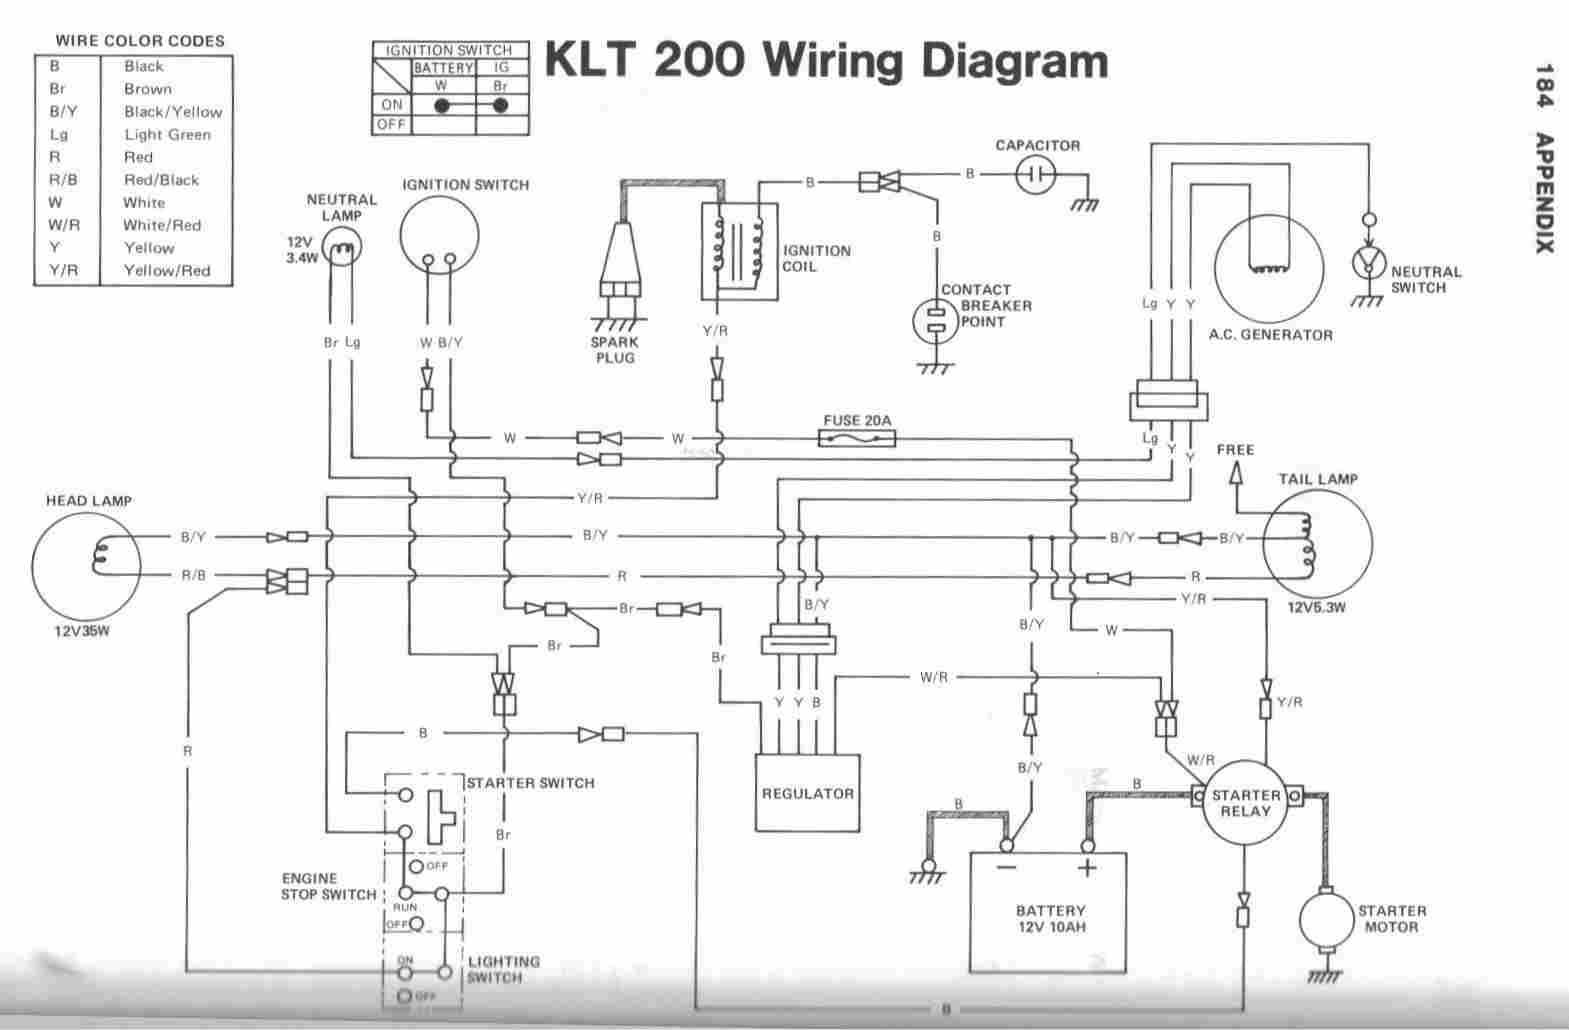 Residential Electrical Wiring Diagrams Pdf Easy Routing Electrical Circuit Diagram Electrical Wiring Diagram Electrical Wiring